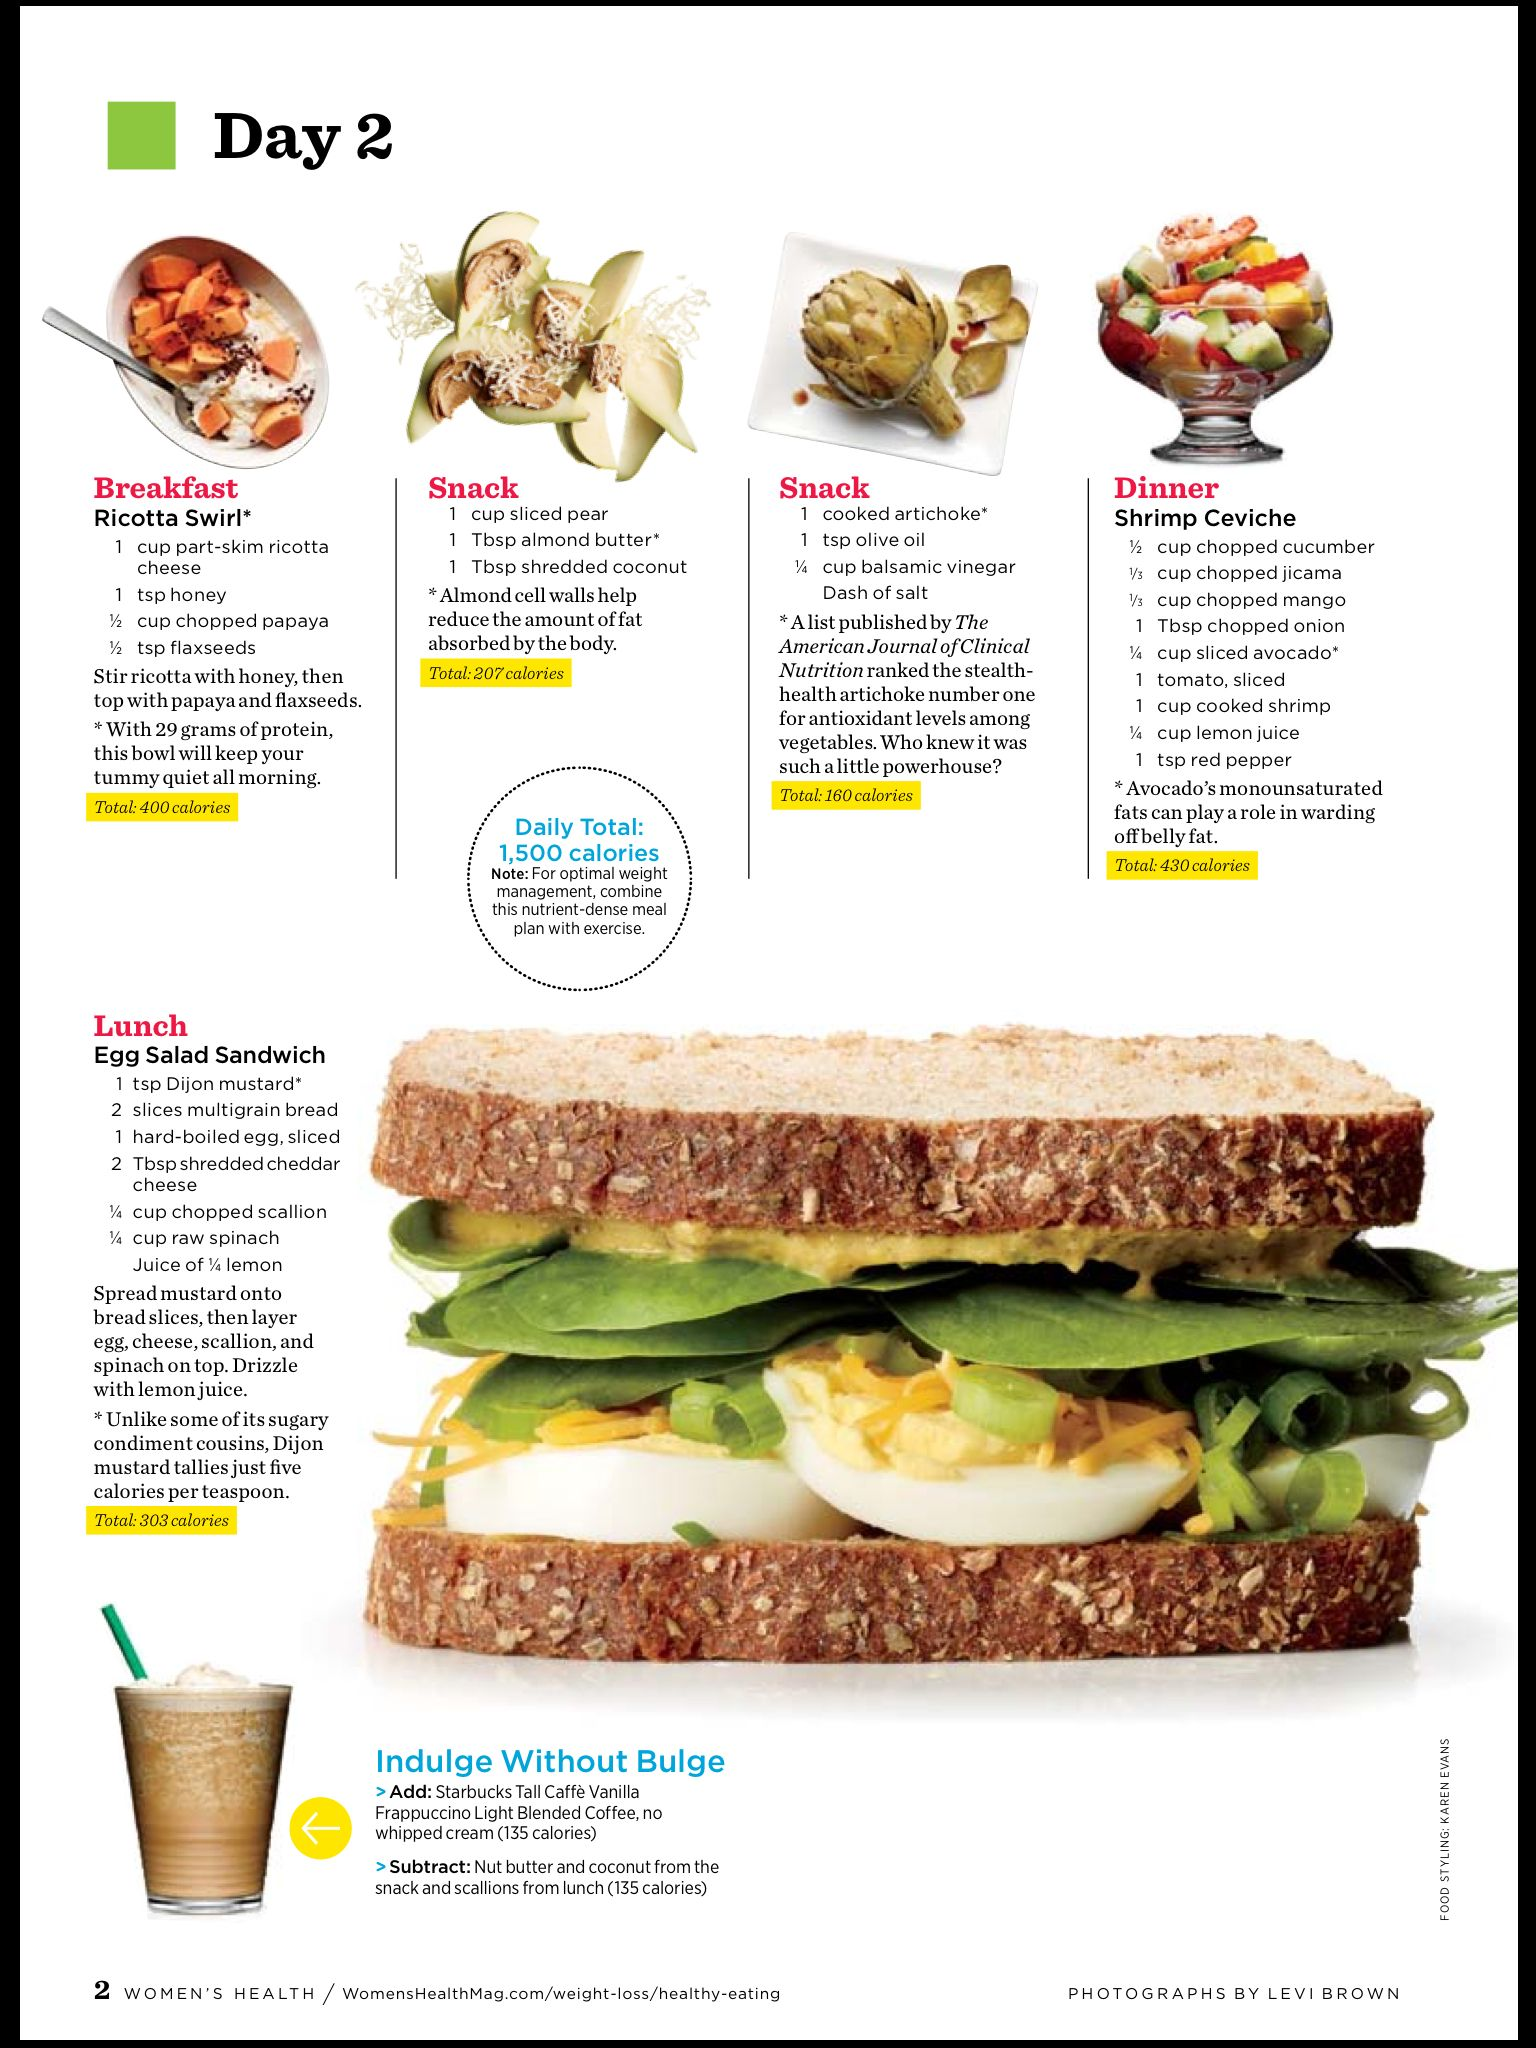 Does just eating protein help you lose weight